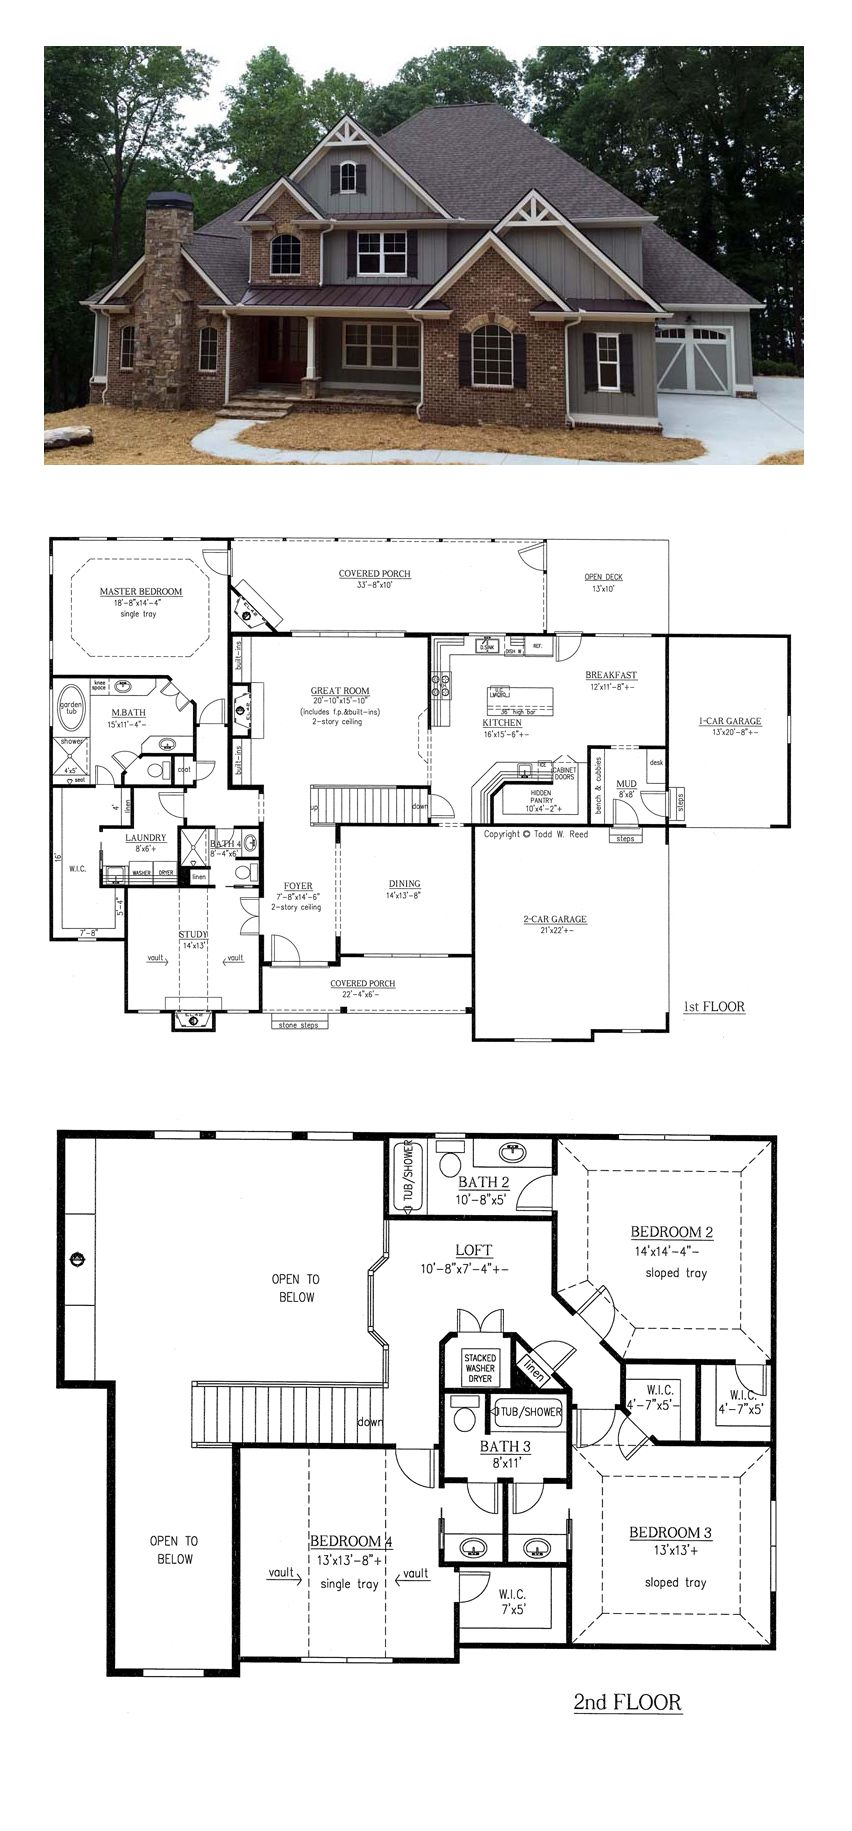 French country house plan 50263 total living area 3290 sq ft 4 bedrooms and 4 bathrooms - Best house plans for a family of four ...